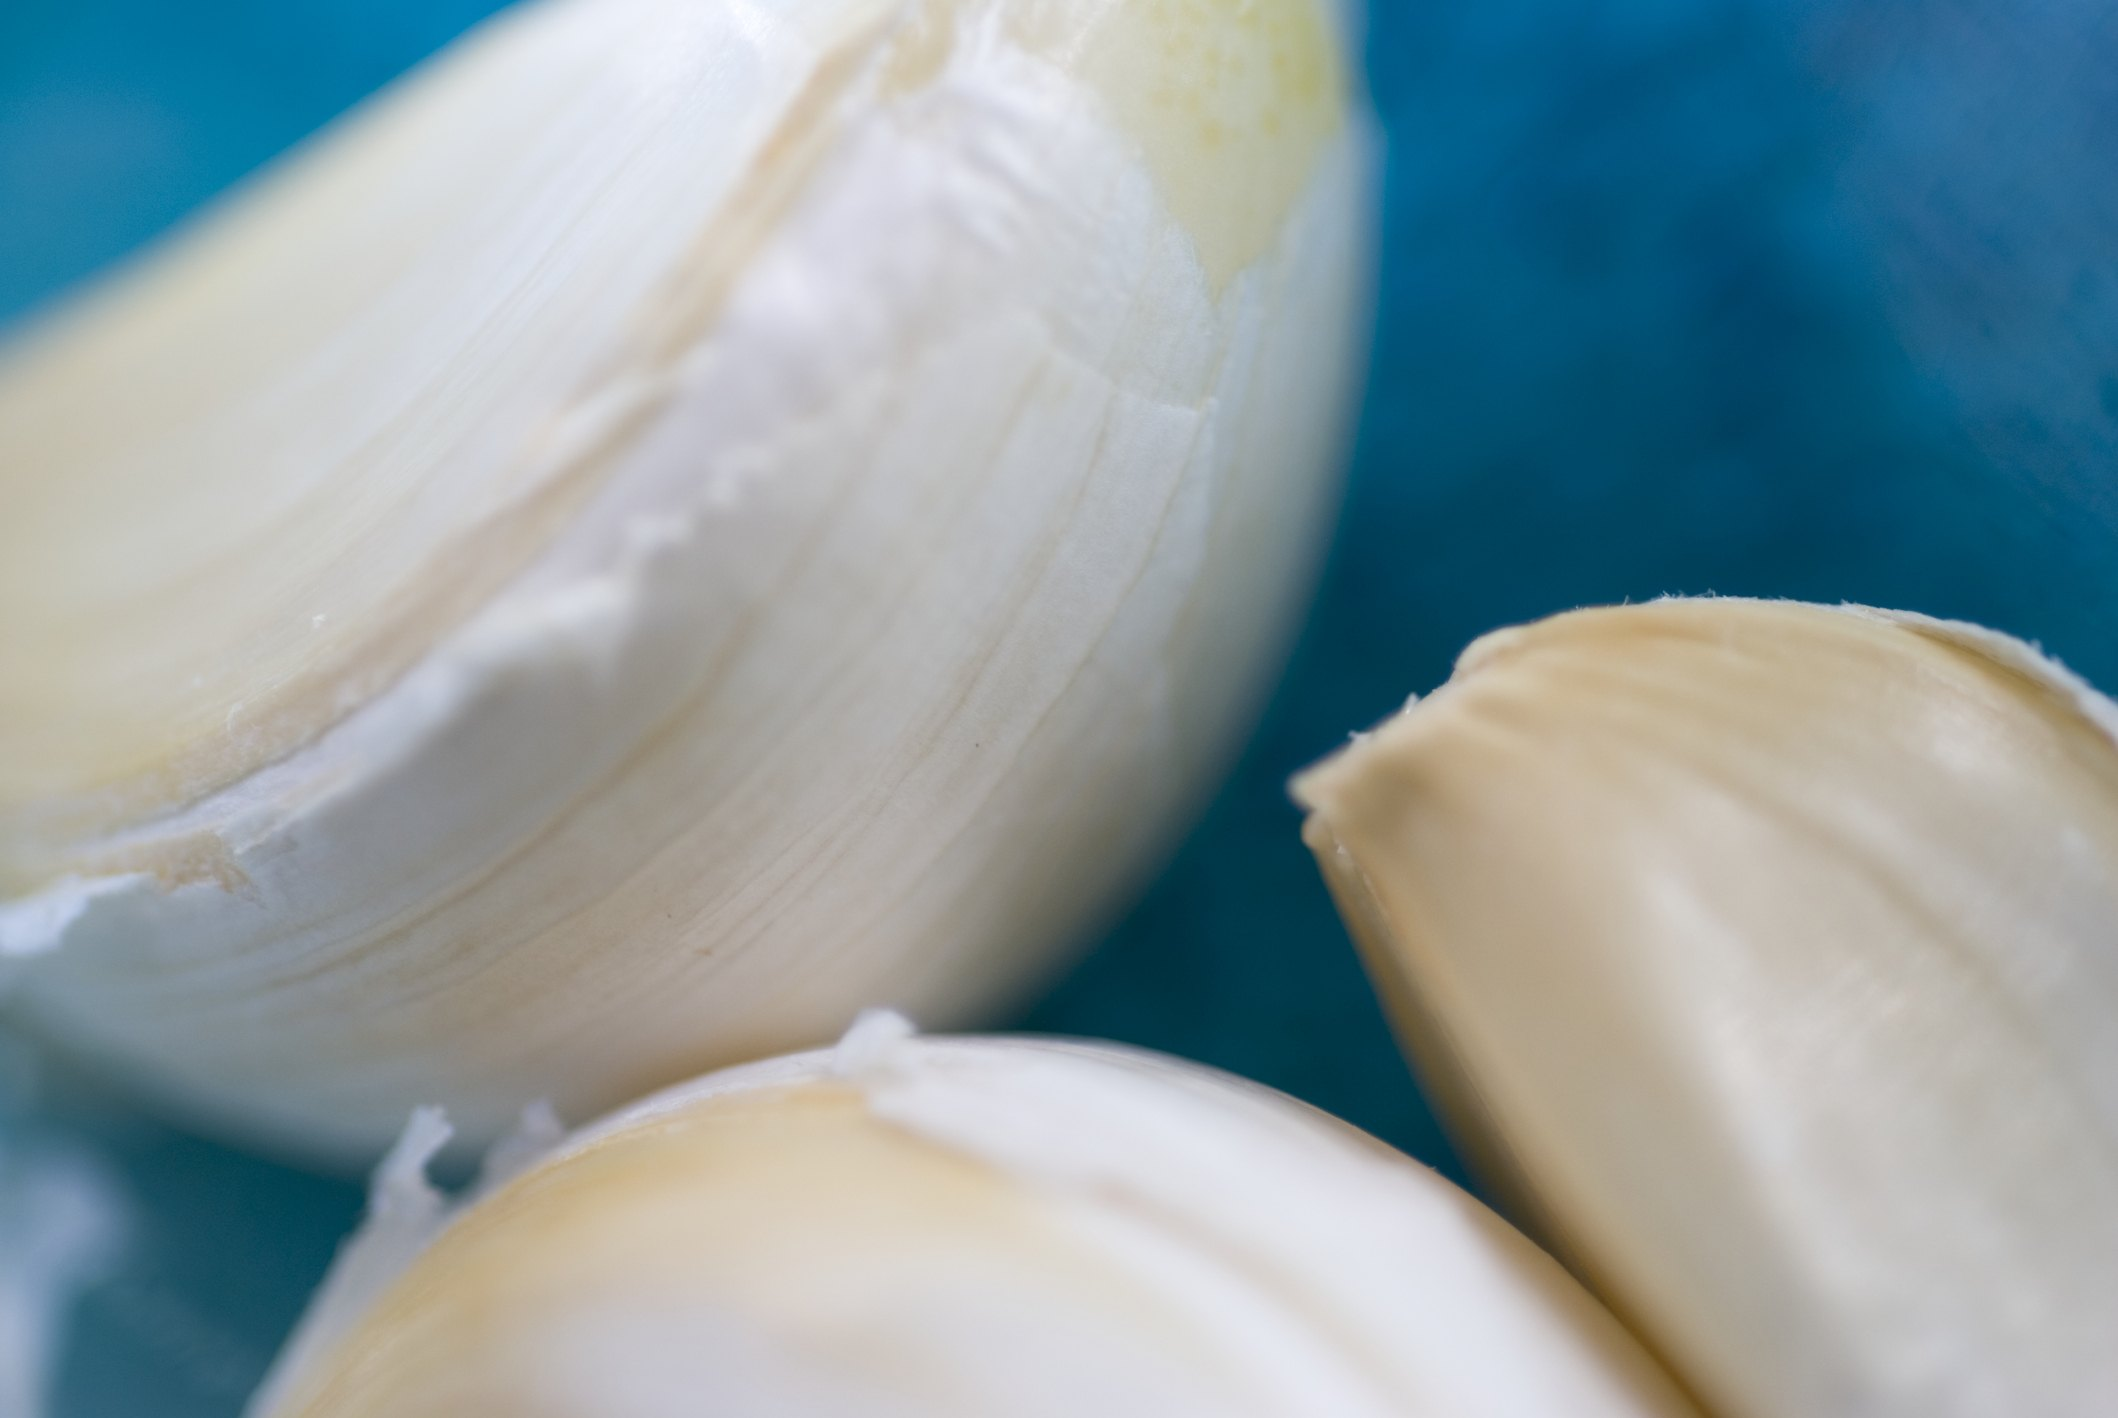 How To Store Garlic Ehow